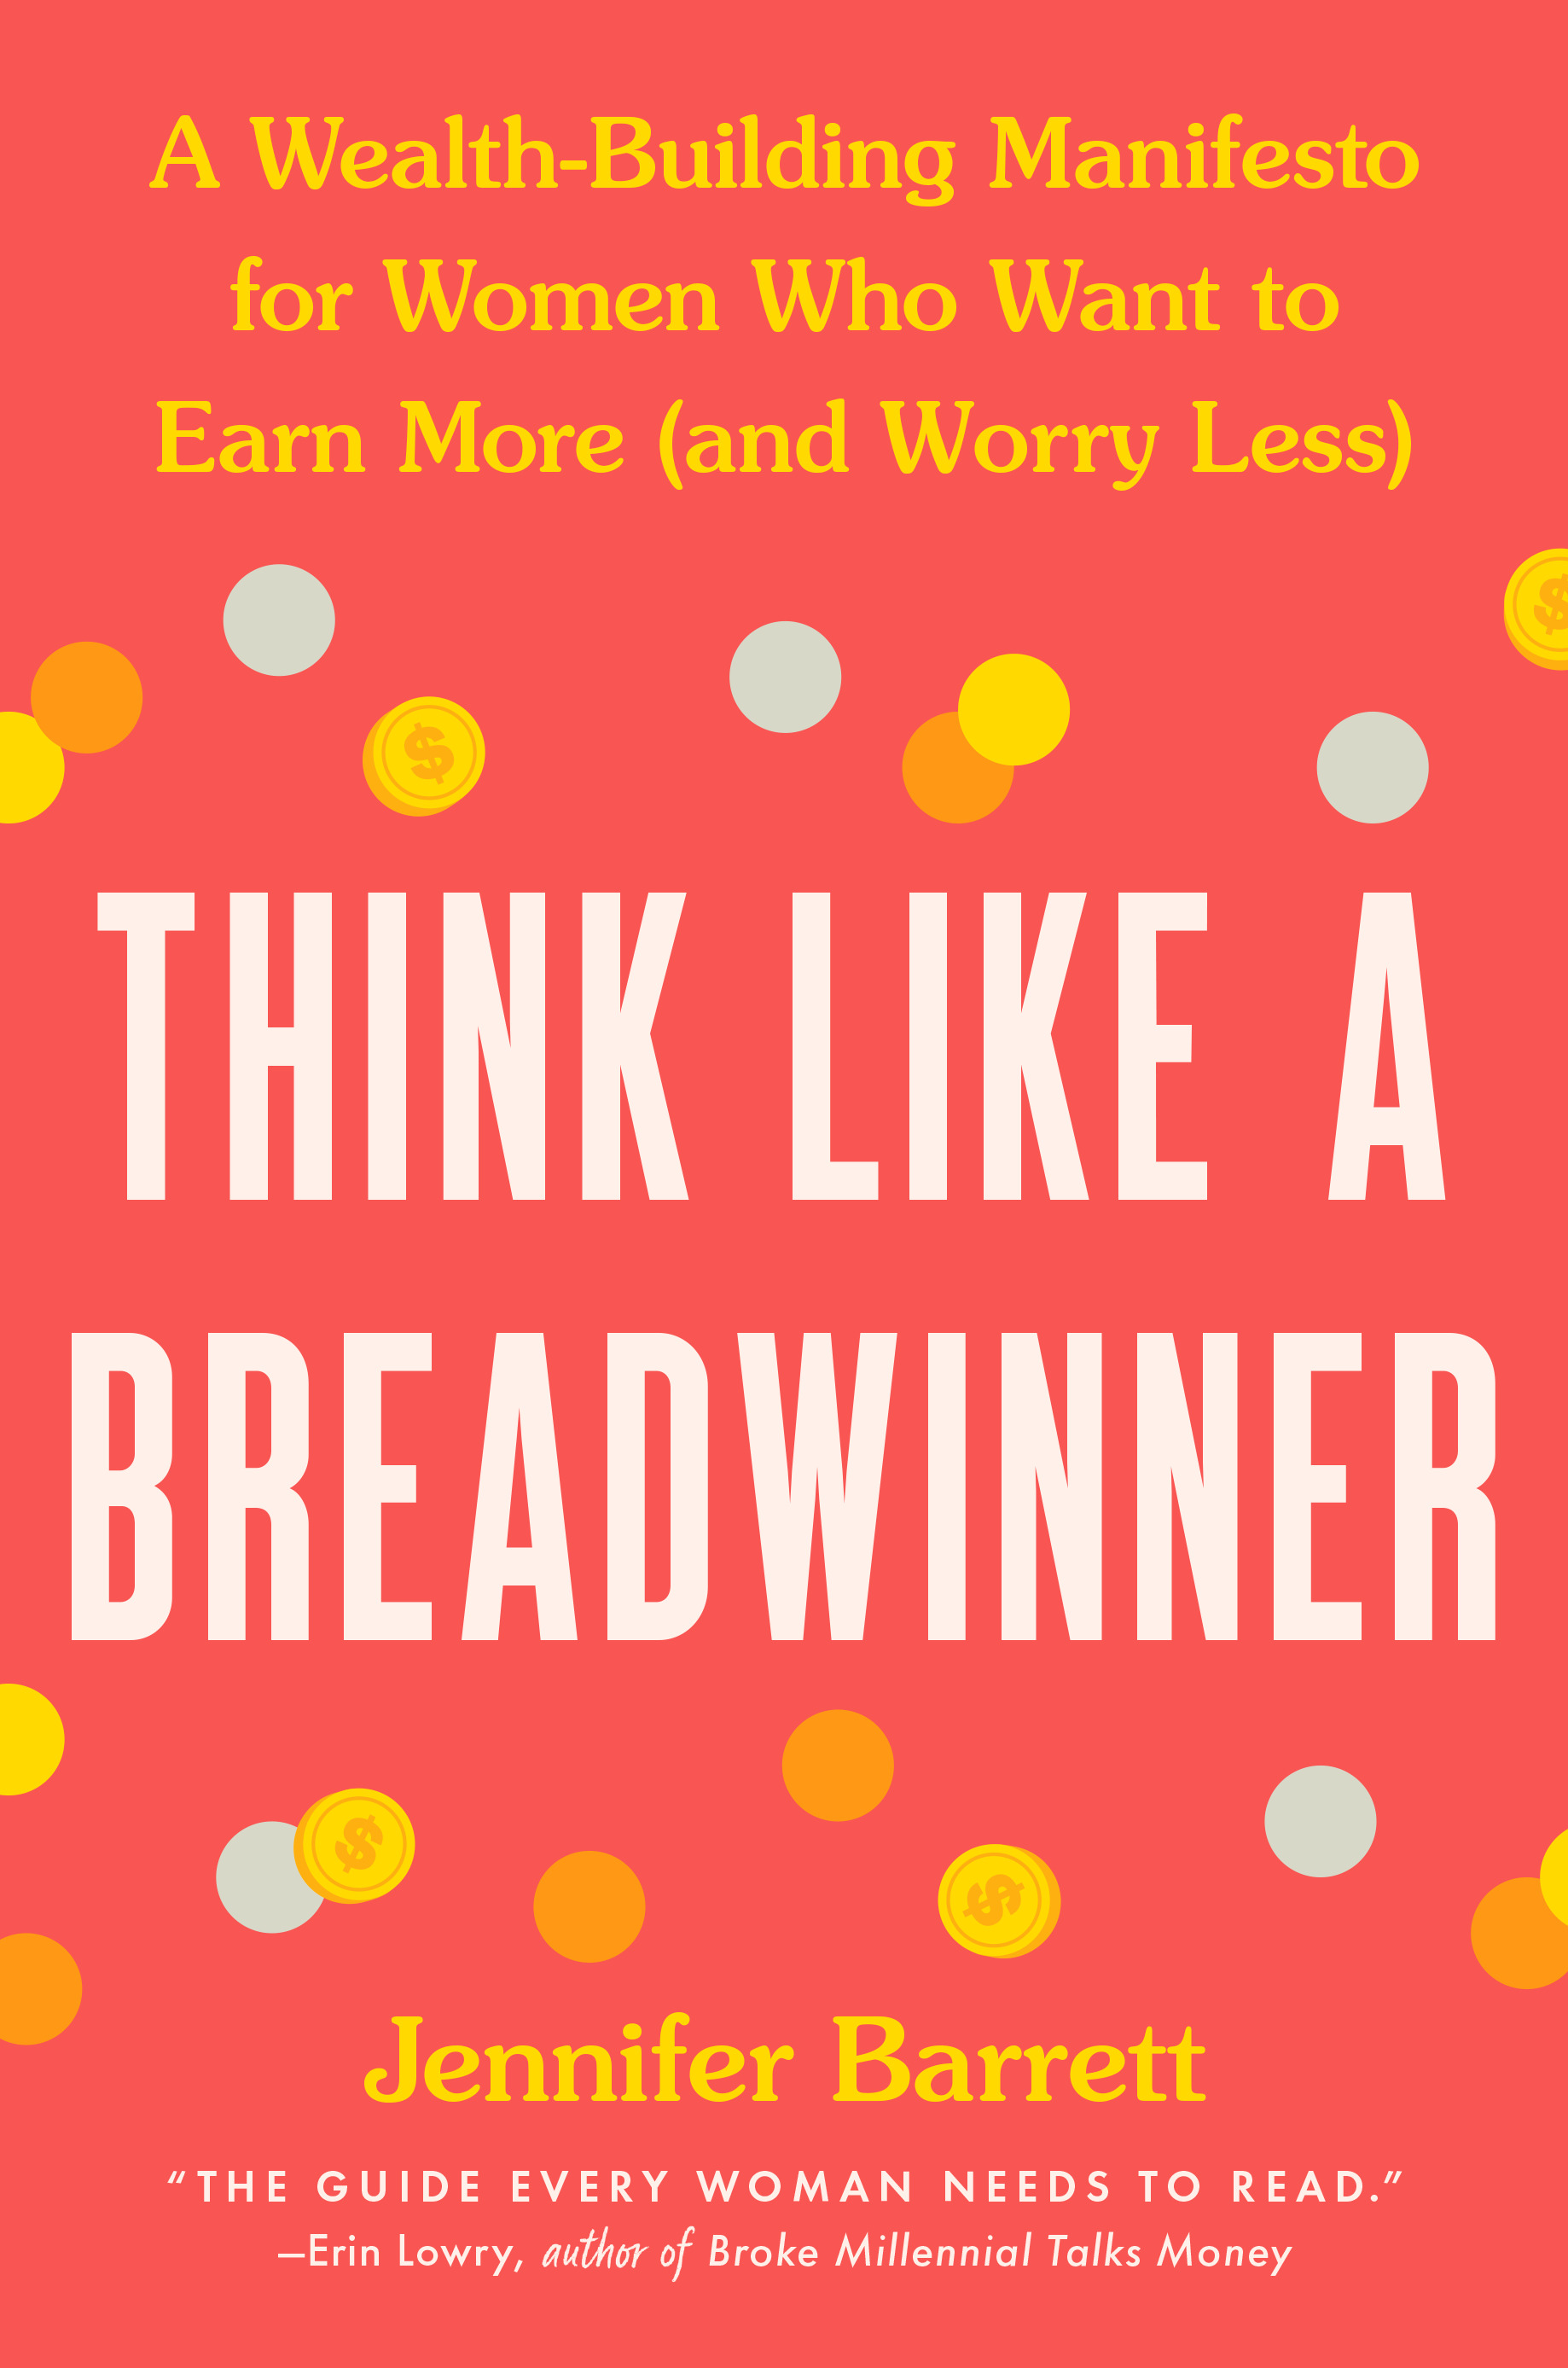 Think Like a Breadwinner: A Wealth-Building Manifesto for Women Who Want to Earn More